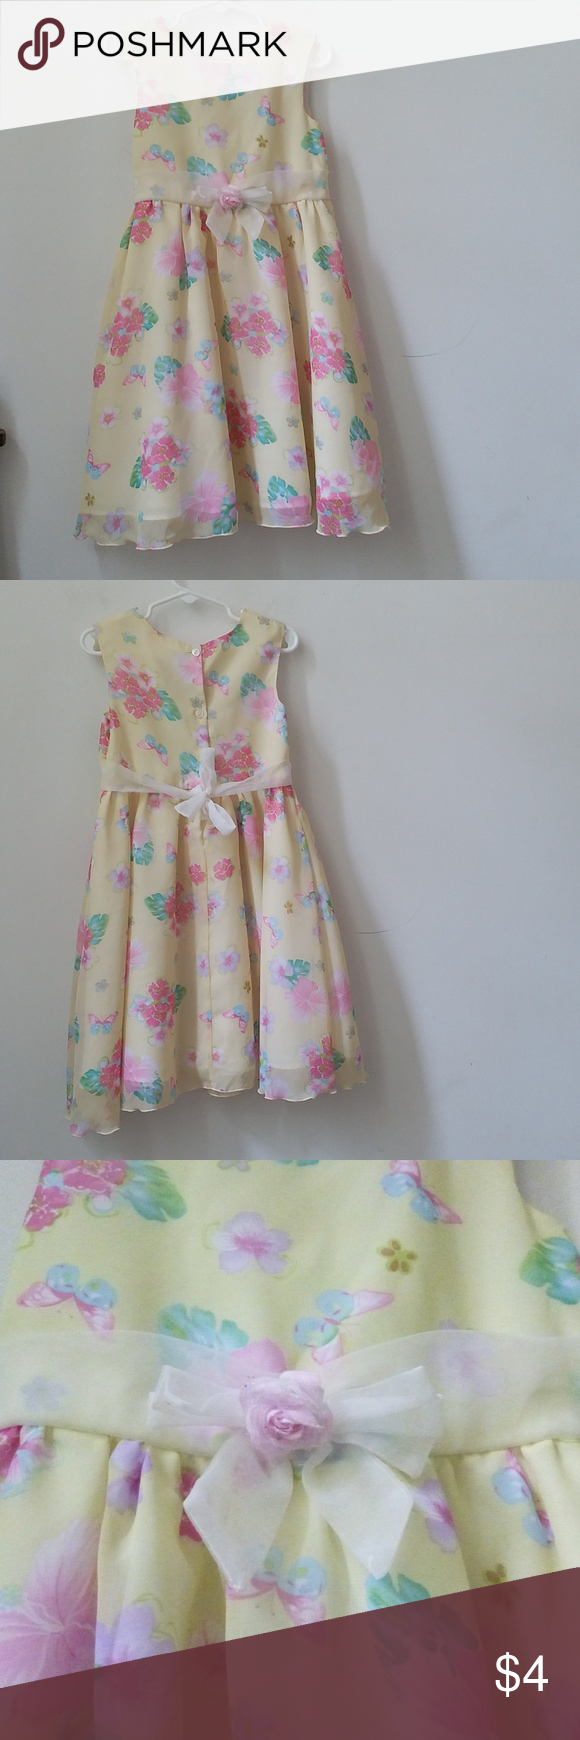 Girls Dress Size 5t Dressy Easter Holiday Party Girls Dress Size 5t Dressy Easter Holiday Party Sleeveless Summer Fancy Girls Party Dress Girls Dresses Dresses [ 1740 x 580 Pixel ]